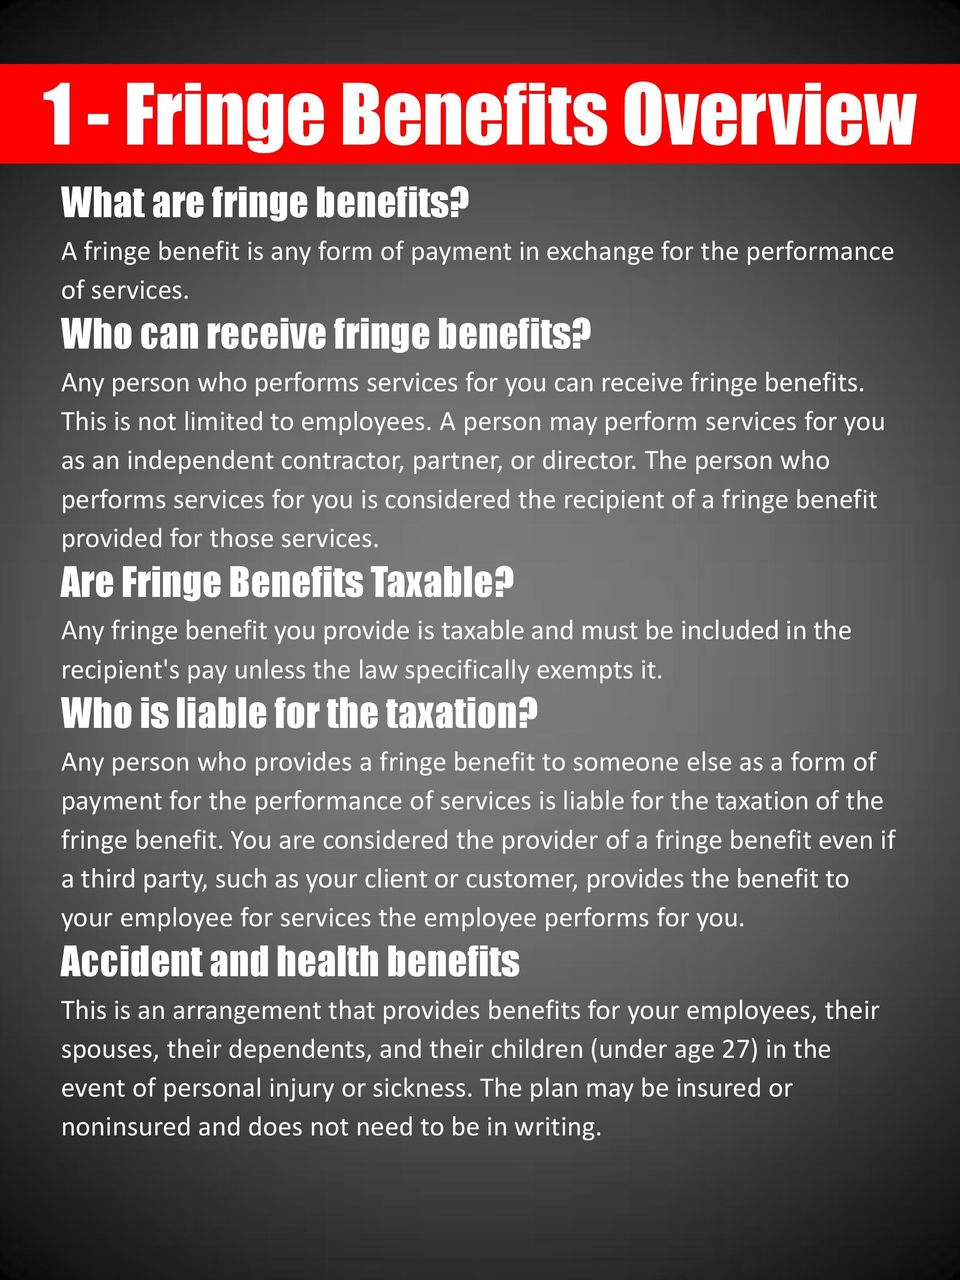 The person who performs services for you is considered the recipient of a fringe benefit provided for those services. Are Fringe Benefits Taxable?